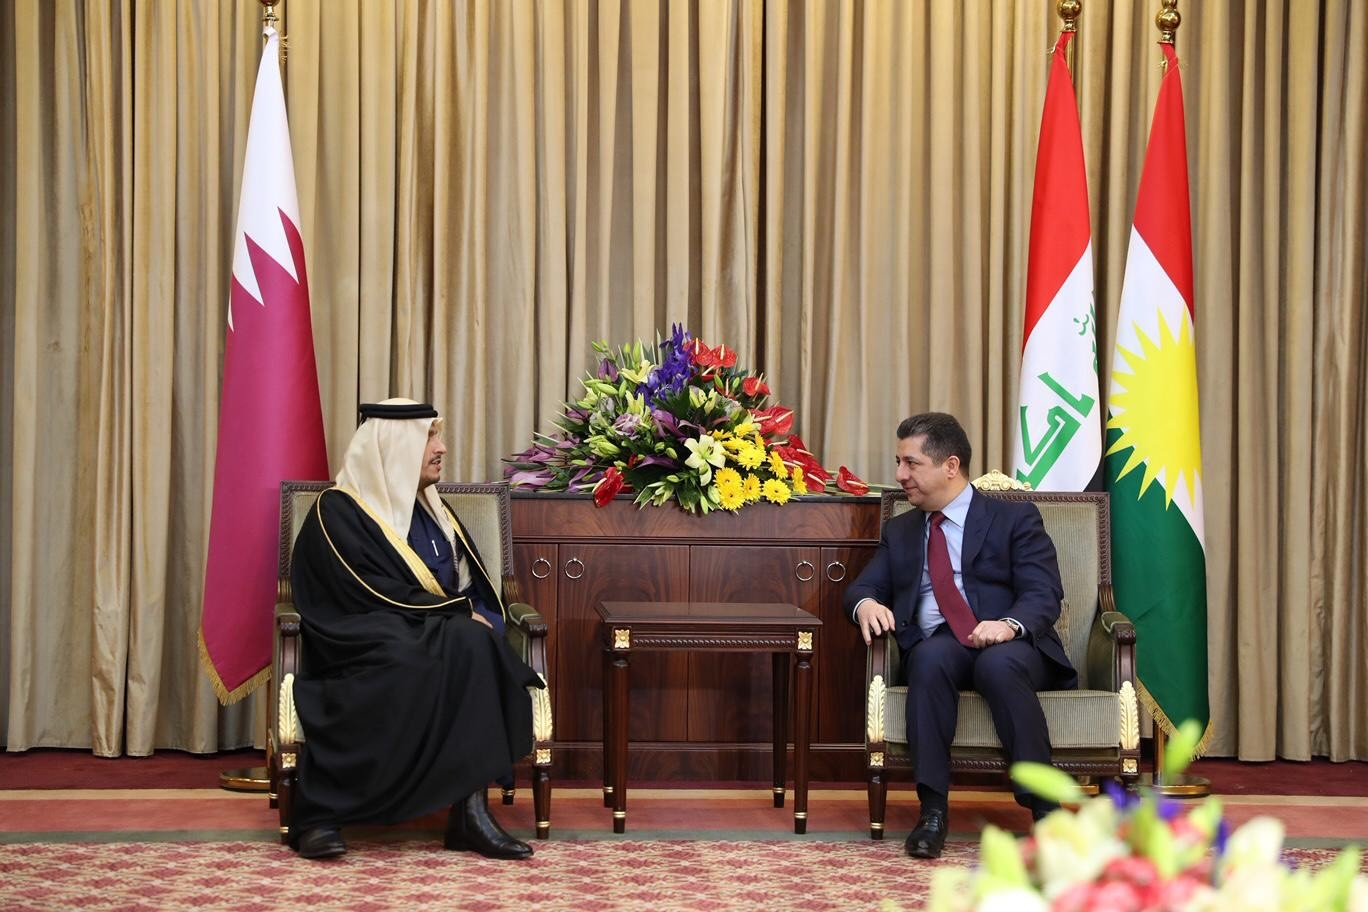 Deputy Prime Minister and Minister of Foreign Affairs Meets Prime Minister of Kurdistan Region of Iraq